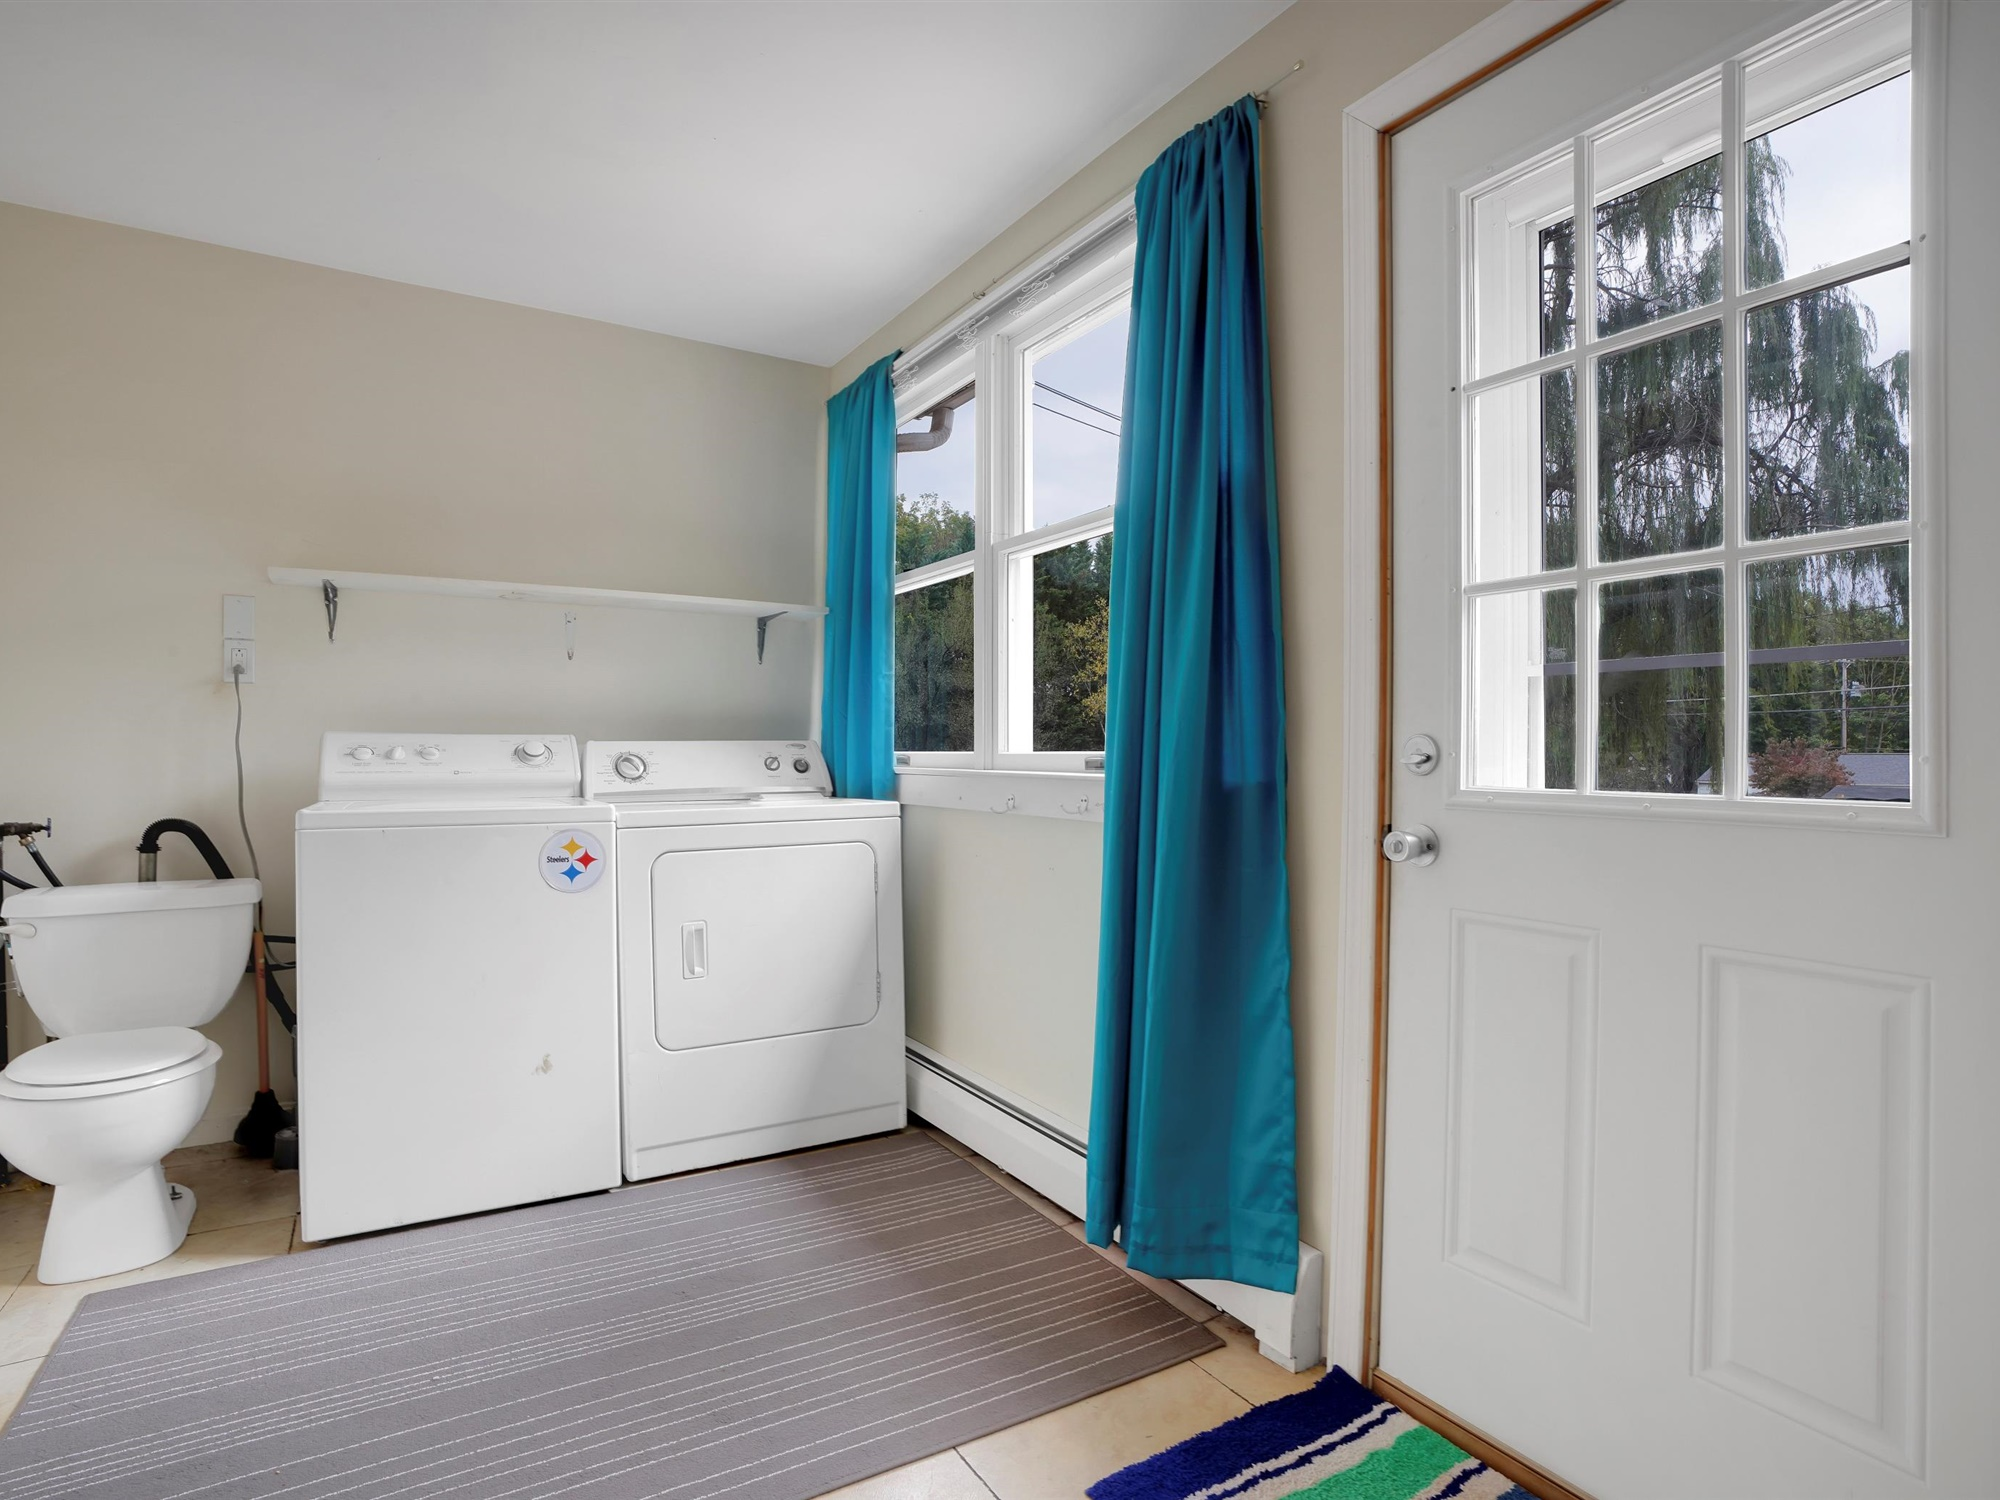 2022 Kline St - Laundry room